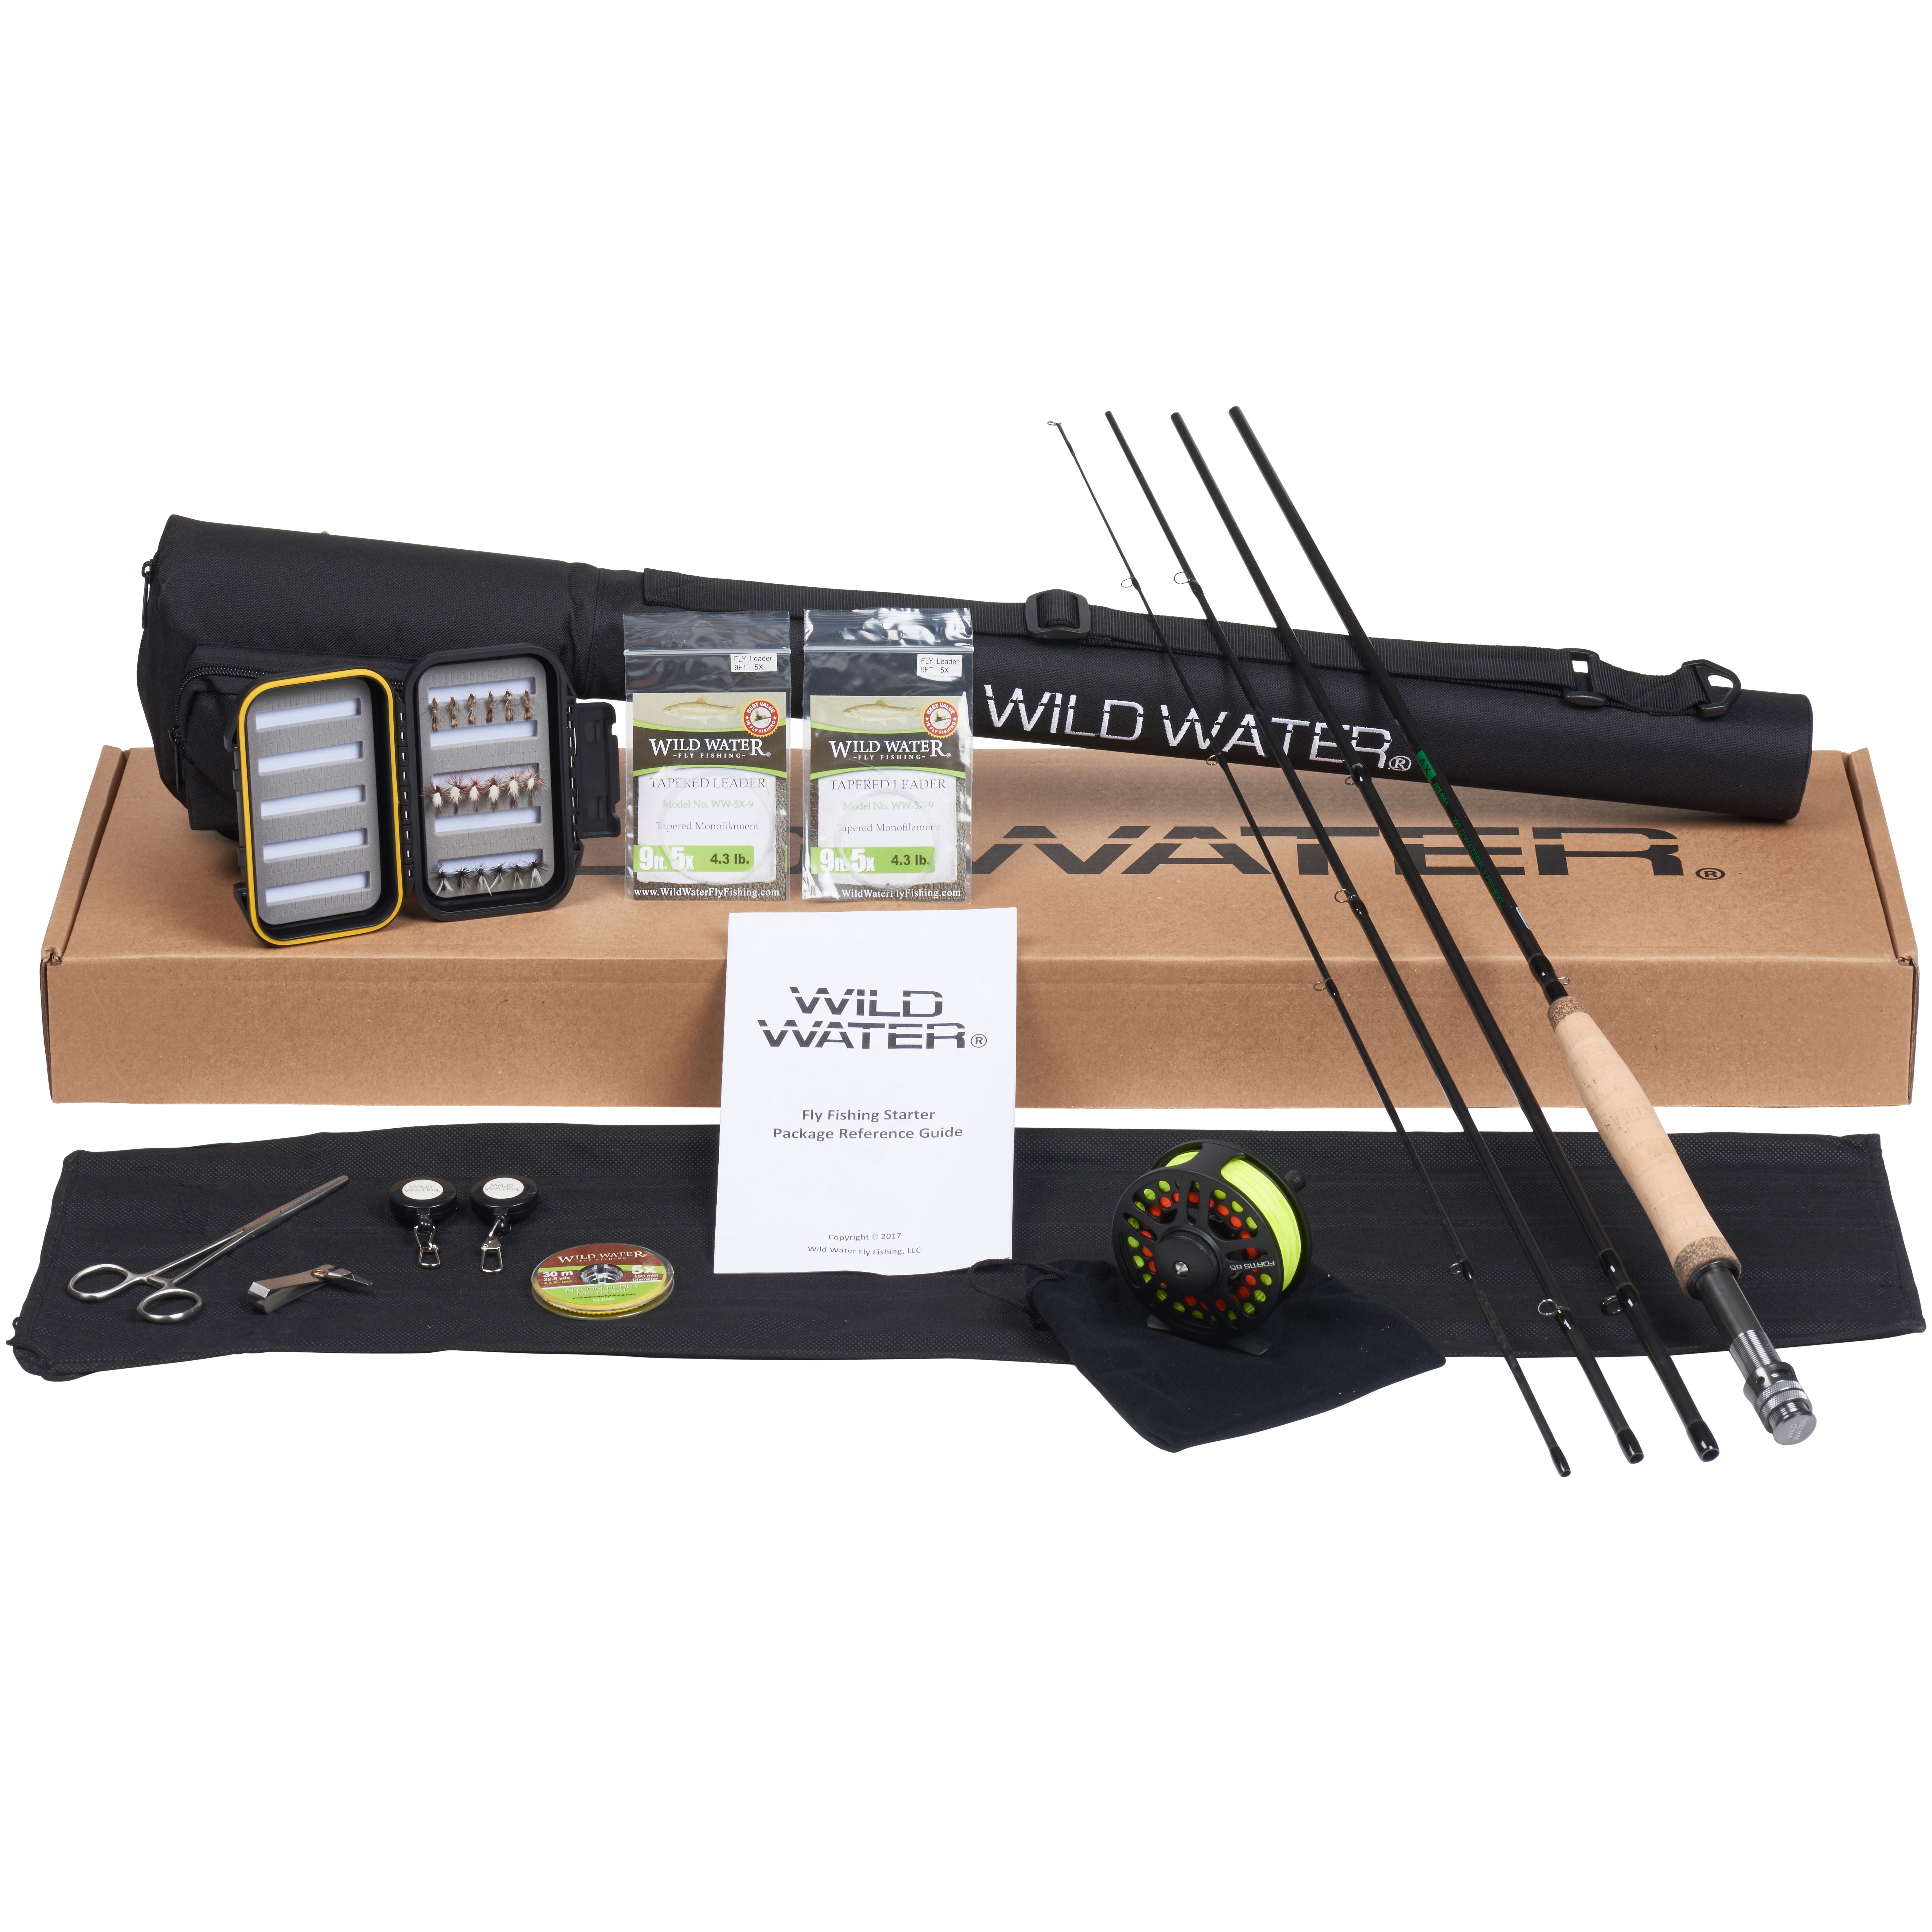 Wild Water Fly Fishing -CNC Machined Aluminum Fly Reel- 5 6 Complete Starter Pkg by Wild Water Fly Fishing, LLC